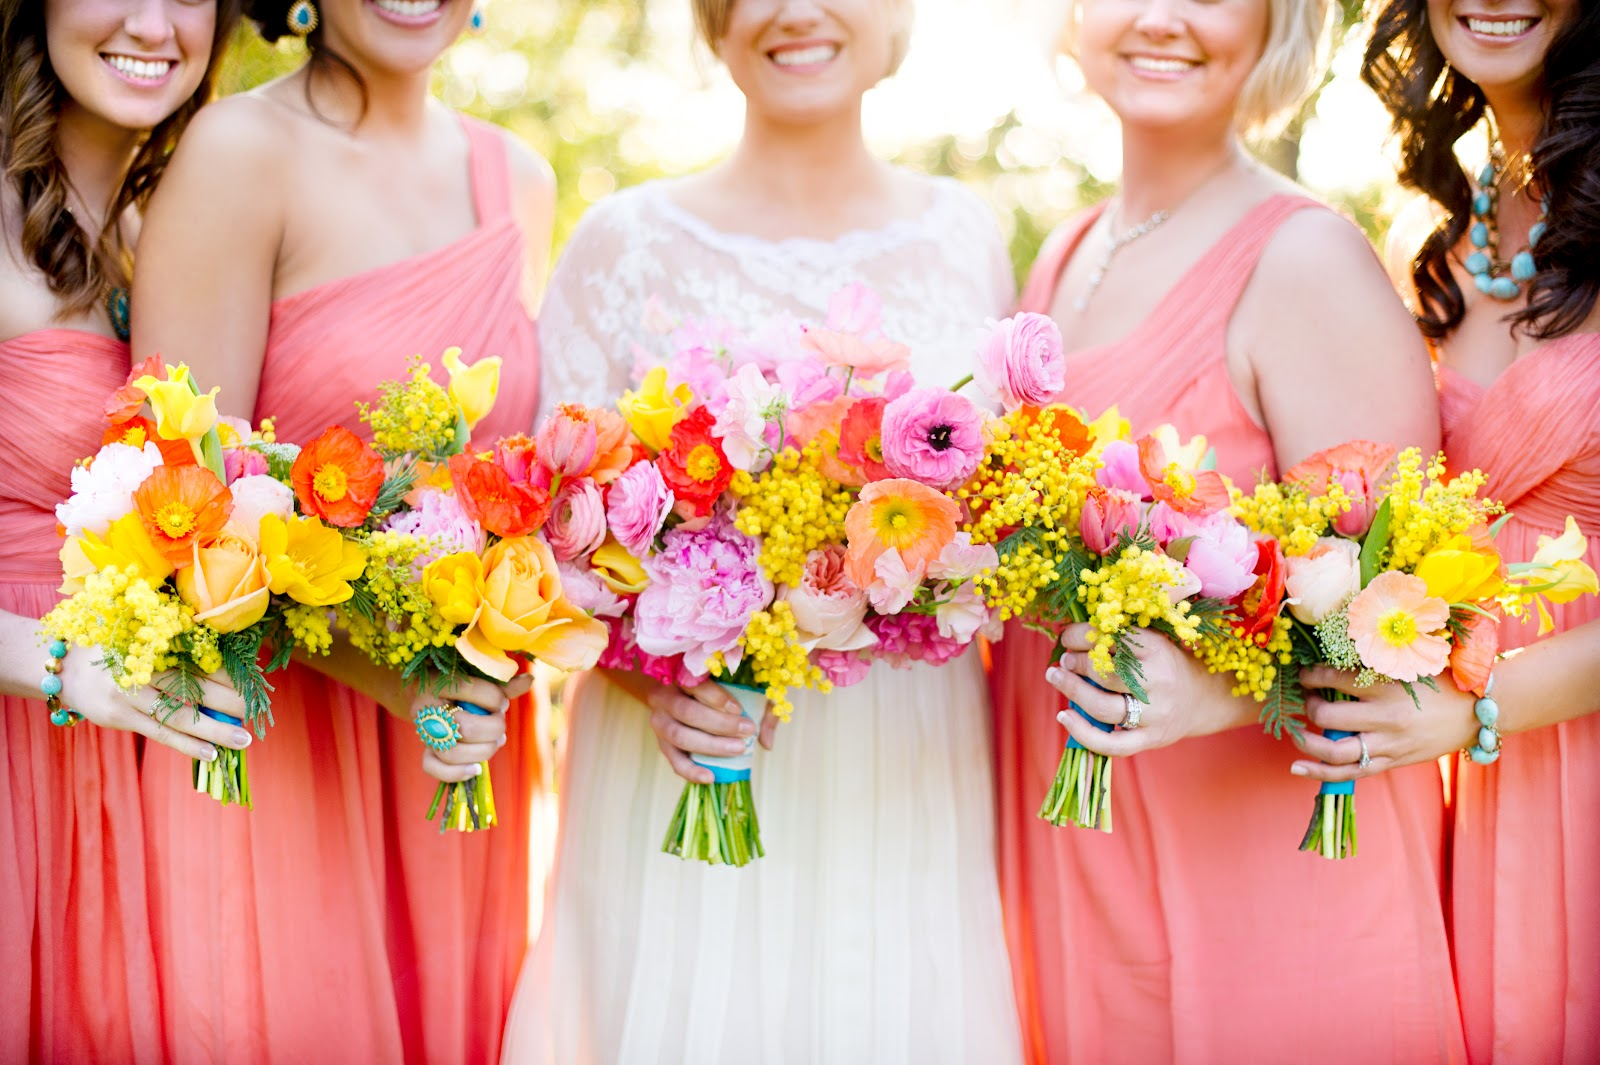 Wedding Flowers Red And Yellow : Pink orange and yellow wedding flowers images